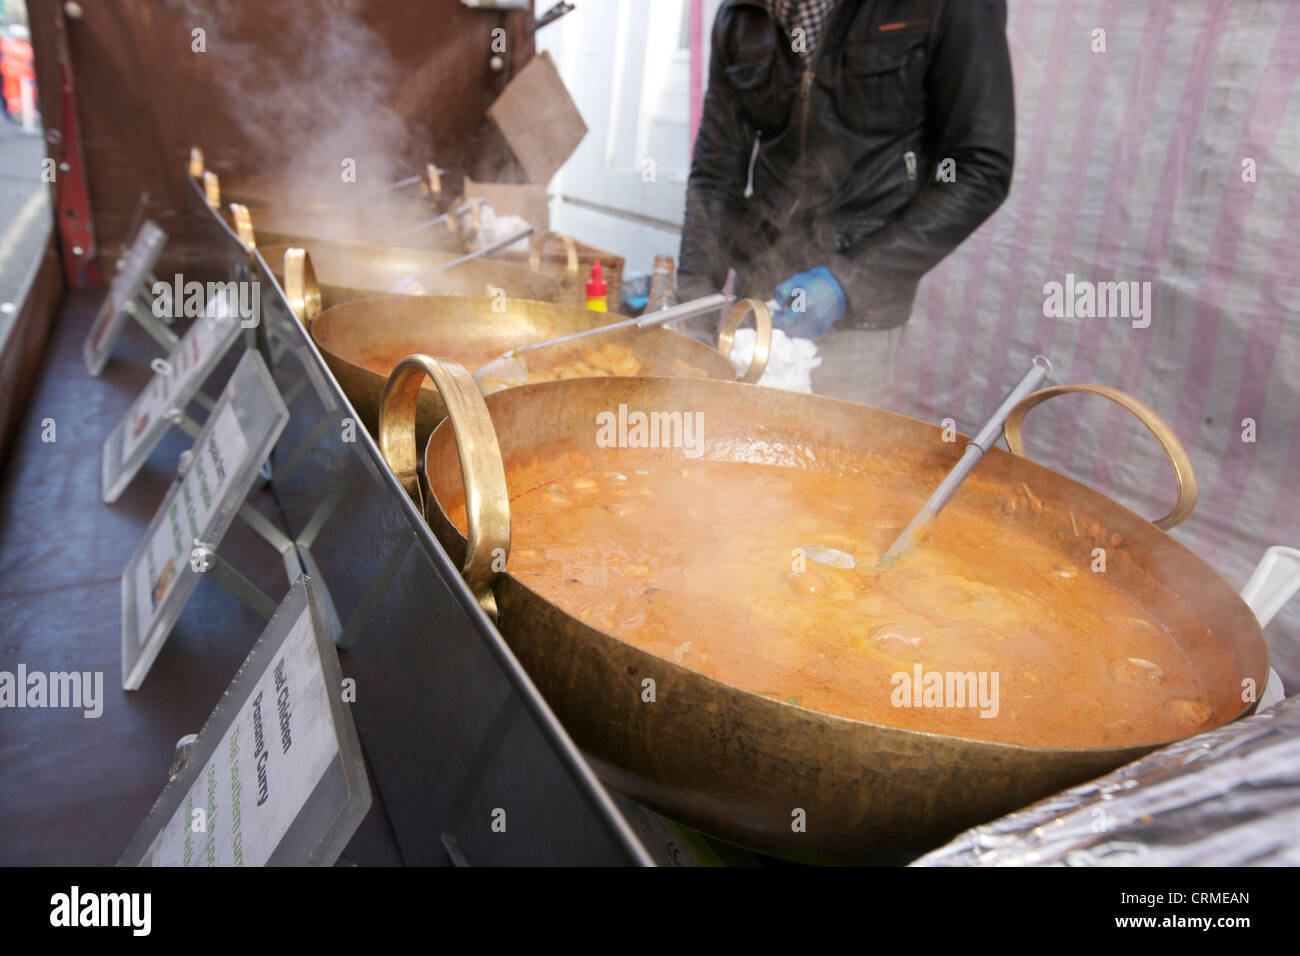 Midsection of a young man cooking Thai food at street stall - Stock Image